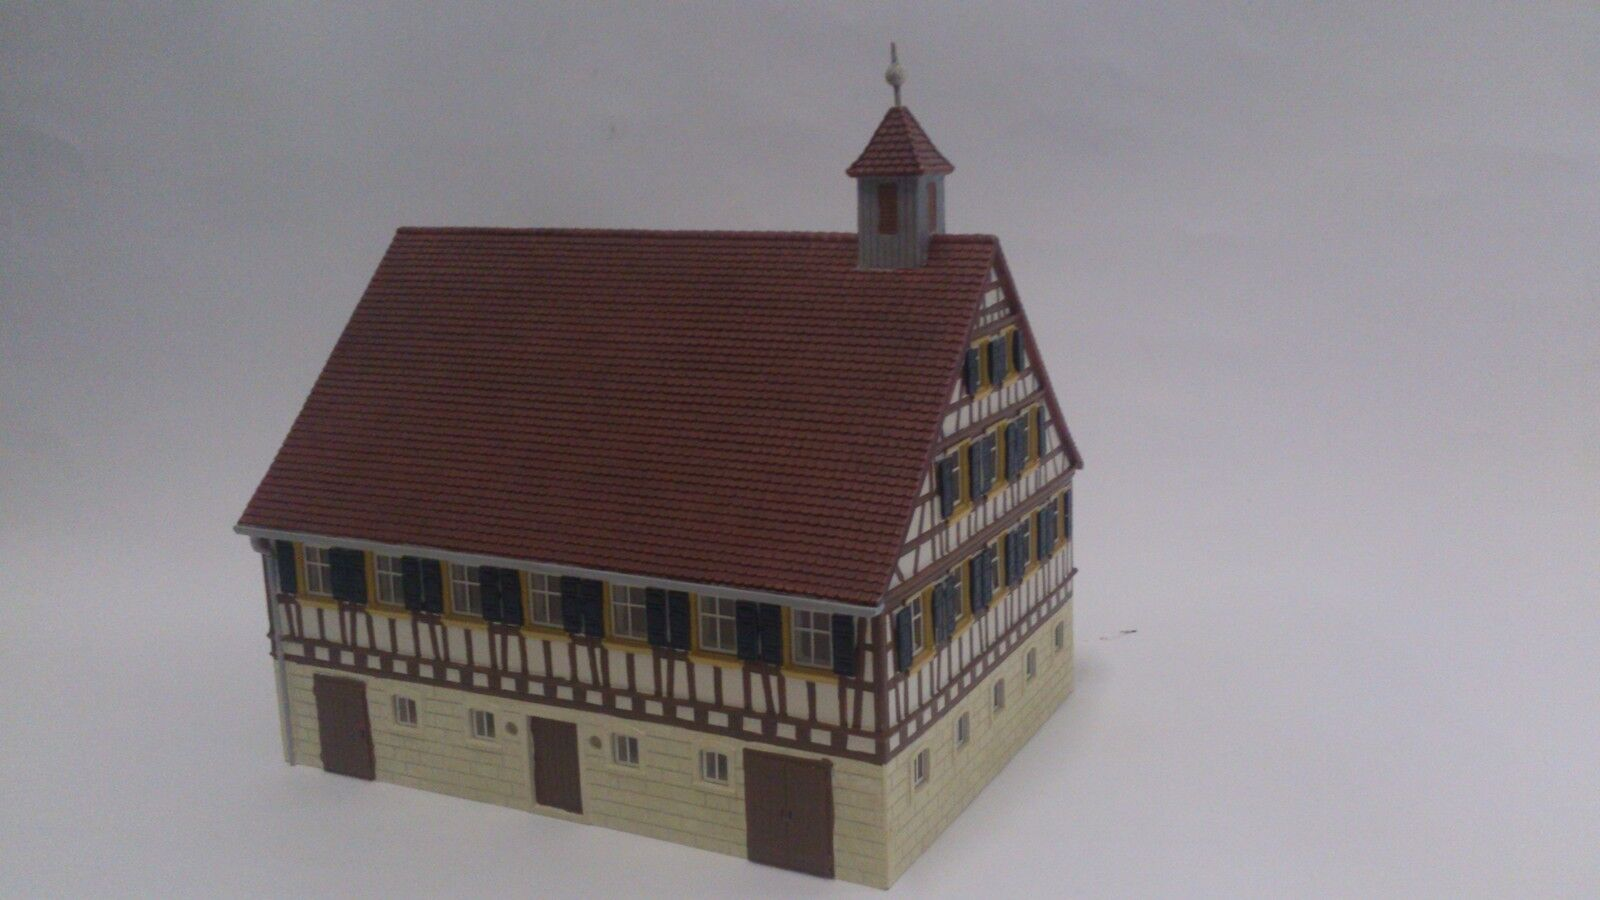 Hornby HC8010 Skale Structures Farm House H0 Gauge 1 87  00 Scale